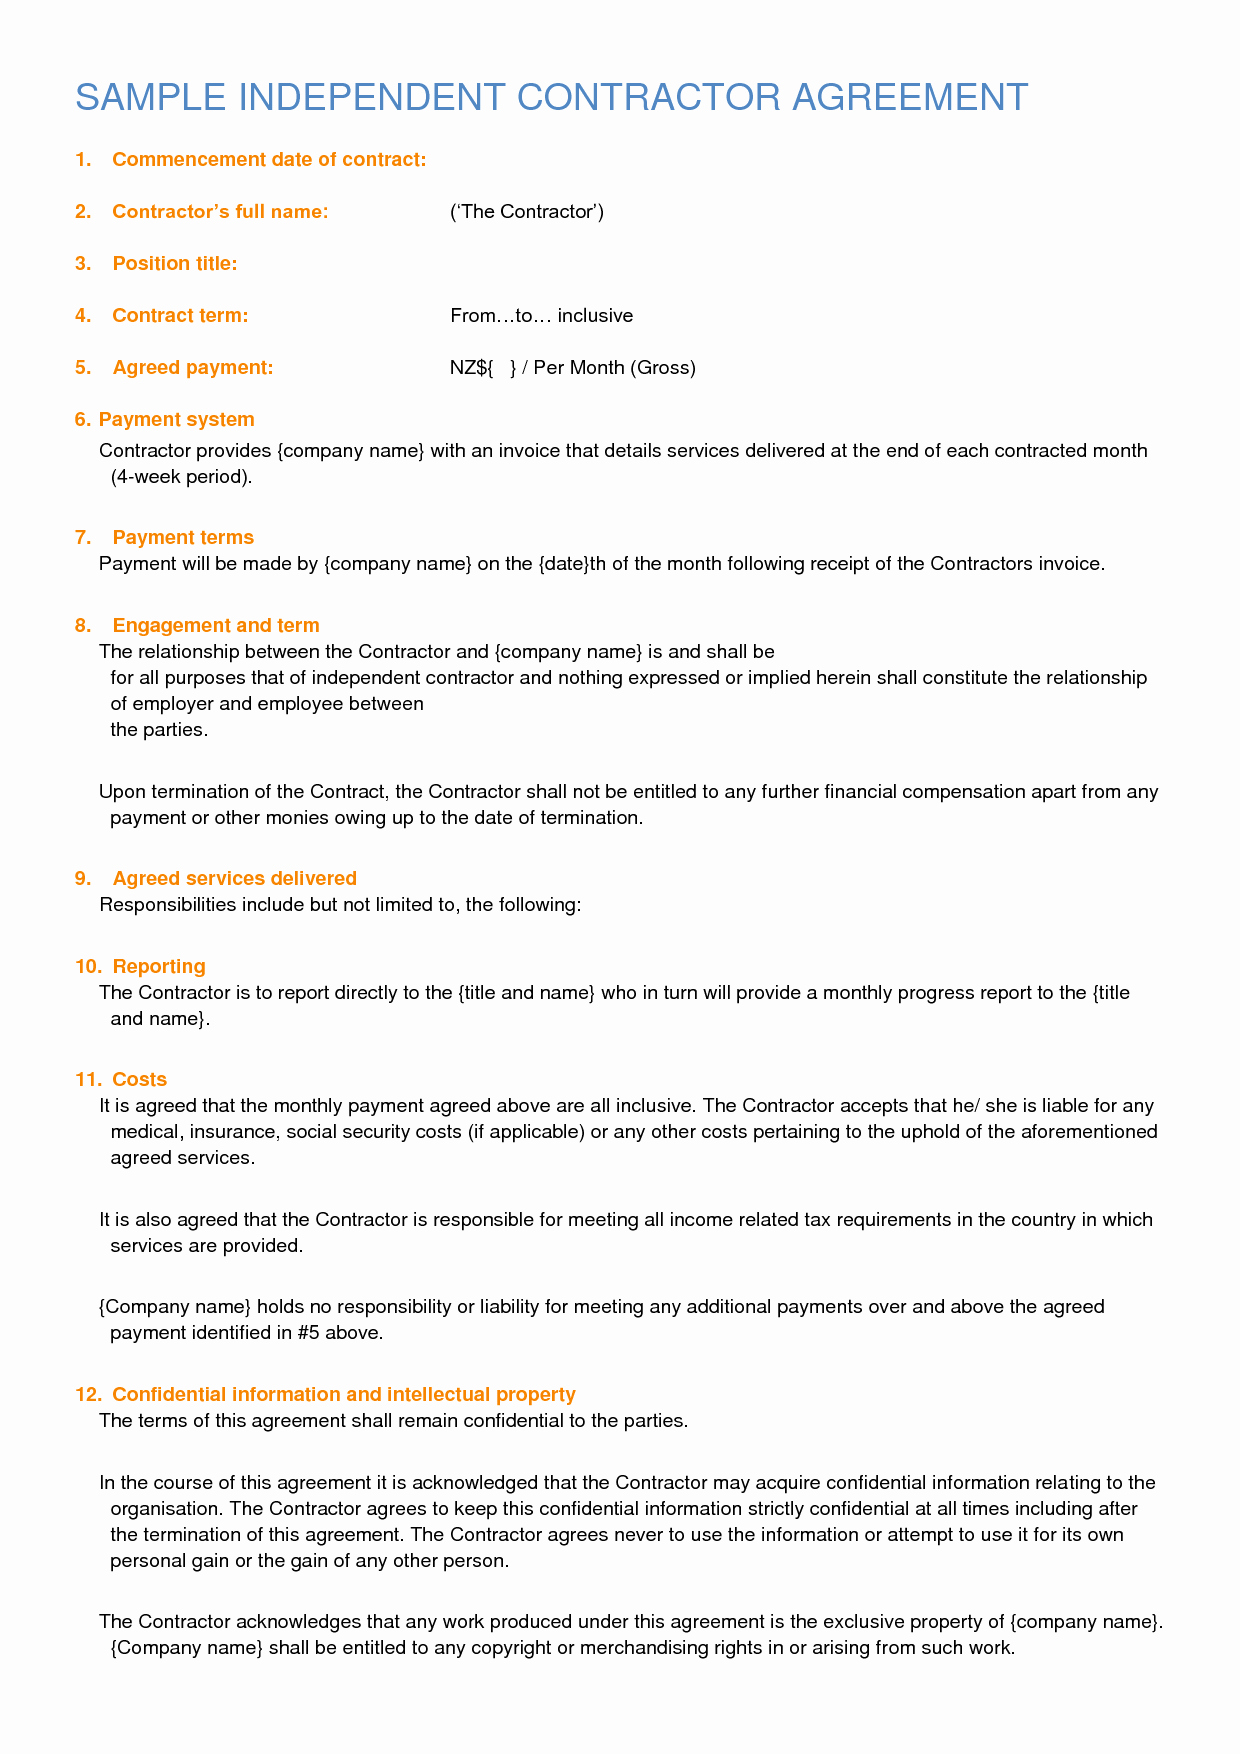 Independent Contractor Agreement Template Free Fresh Independent Contractor Contract Sample Free Printable